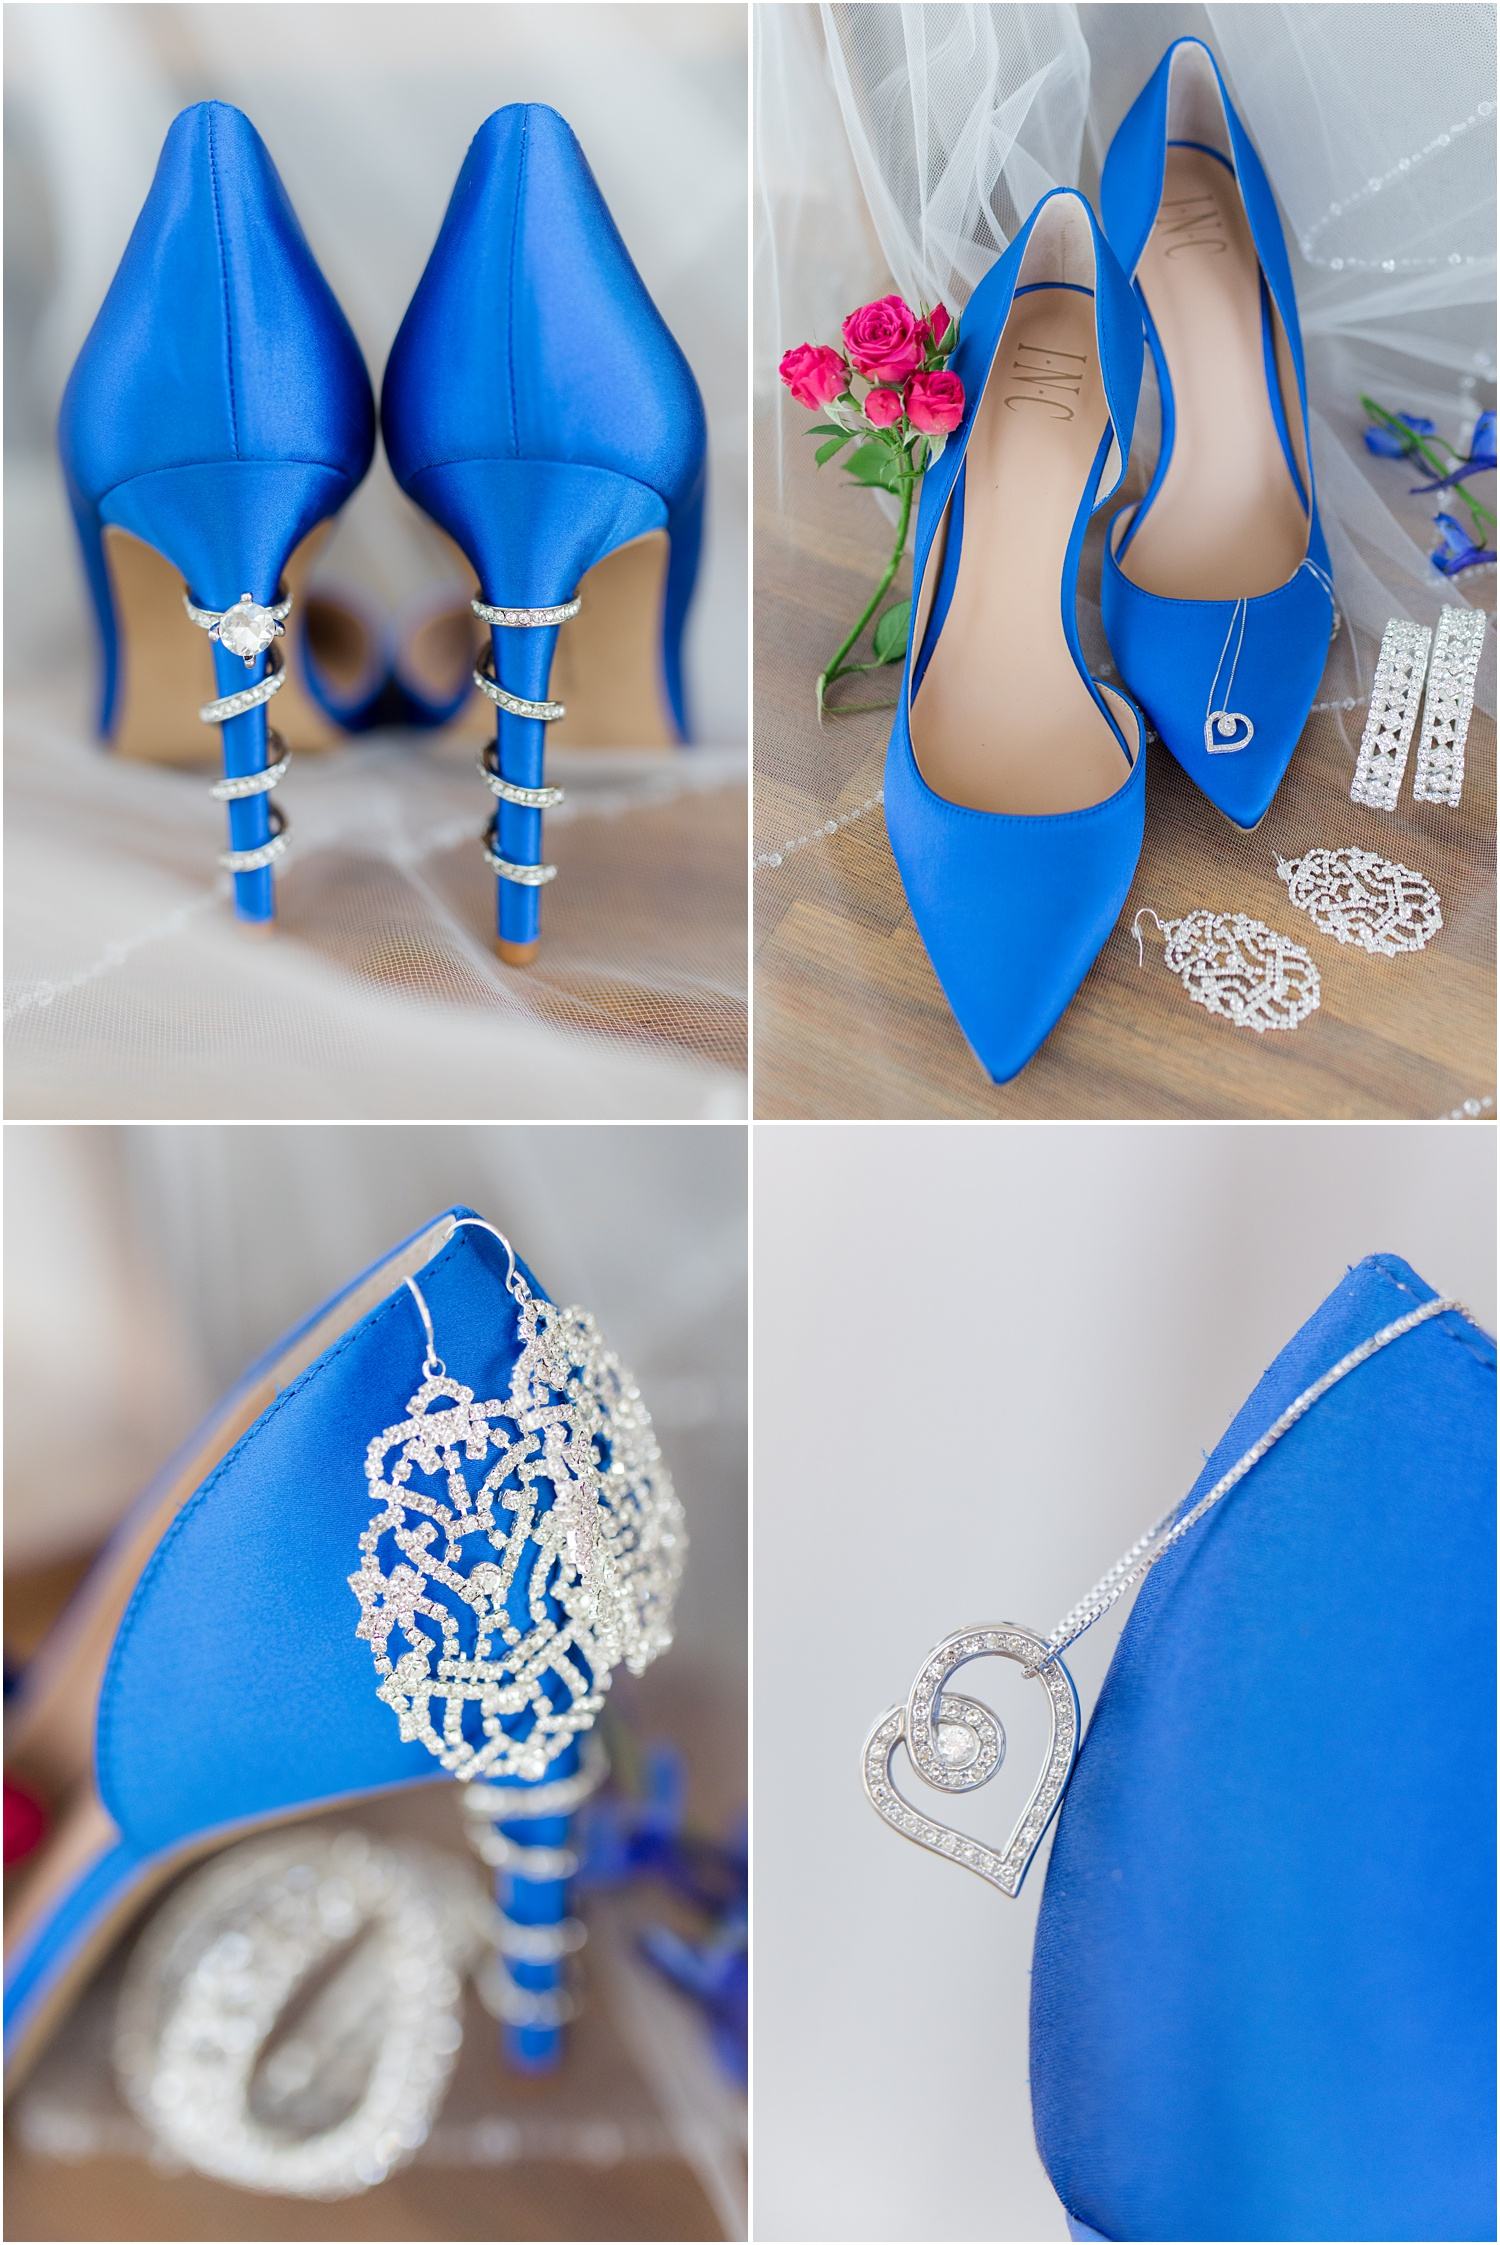 blue wedding shoes with engagement ring detail on heel.